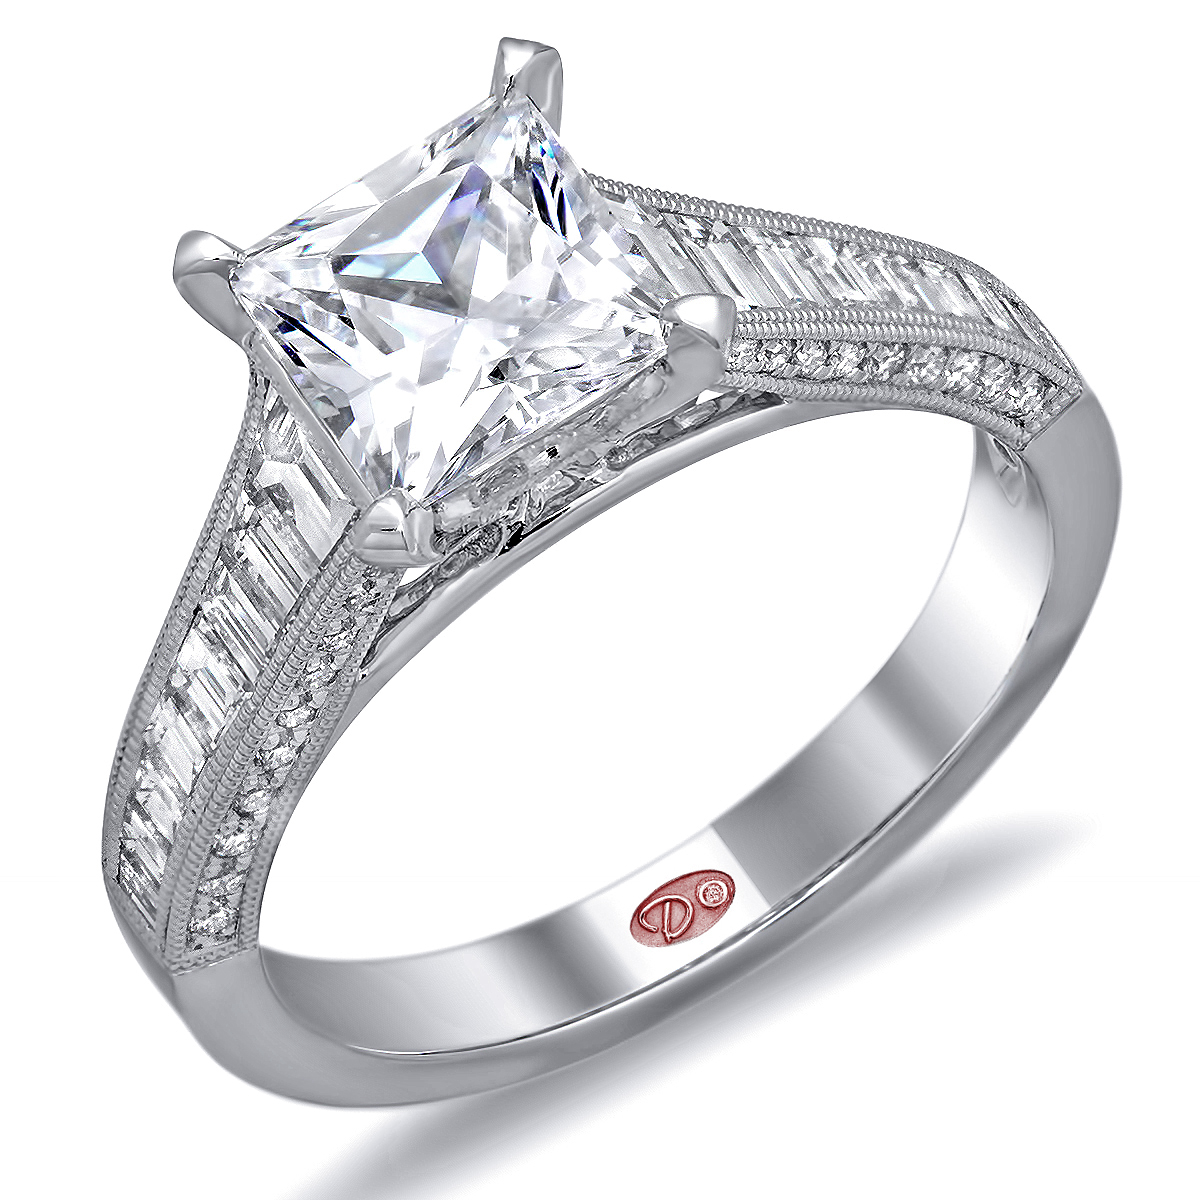 Unique Engagement Rings - DW6053